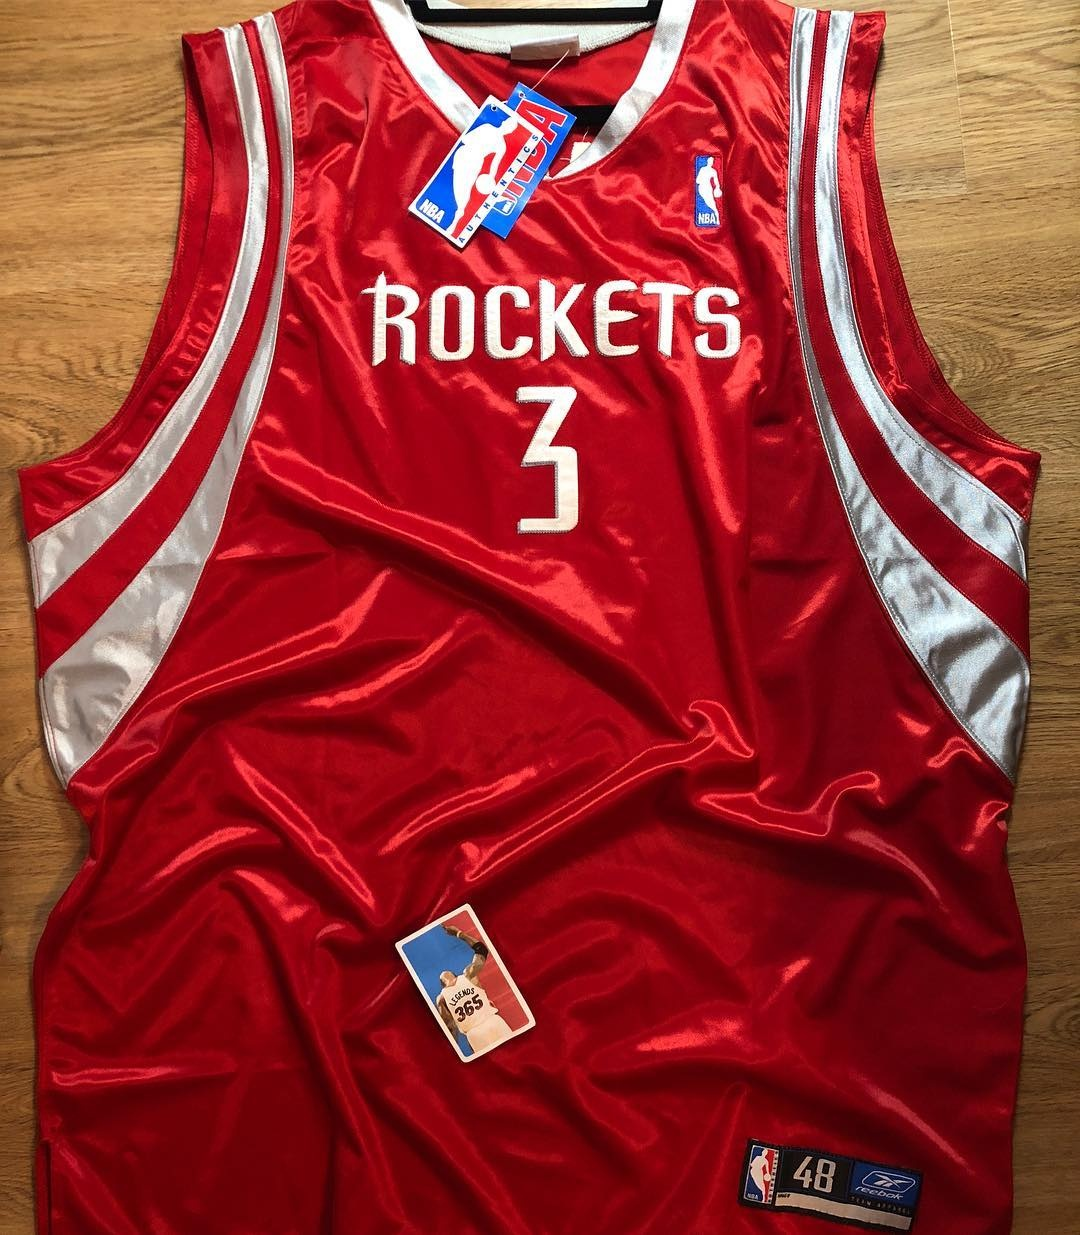 064674d08b1 ... fake NBA jerseys online store from many points of views- it has a large  selection of very popular basketball items